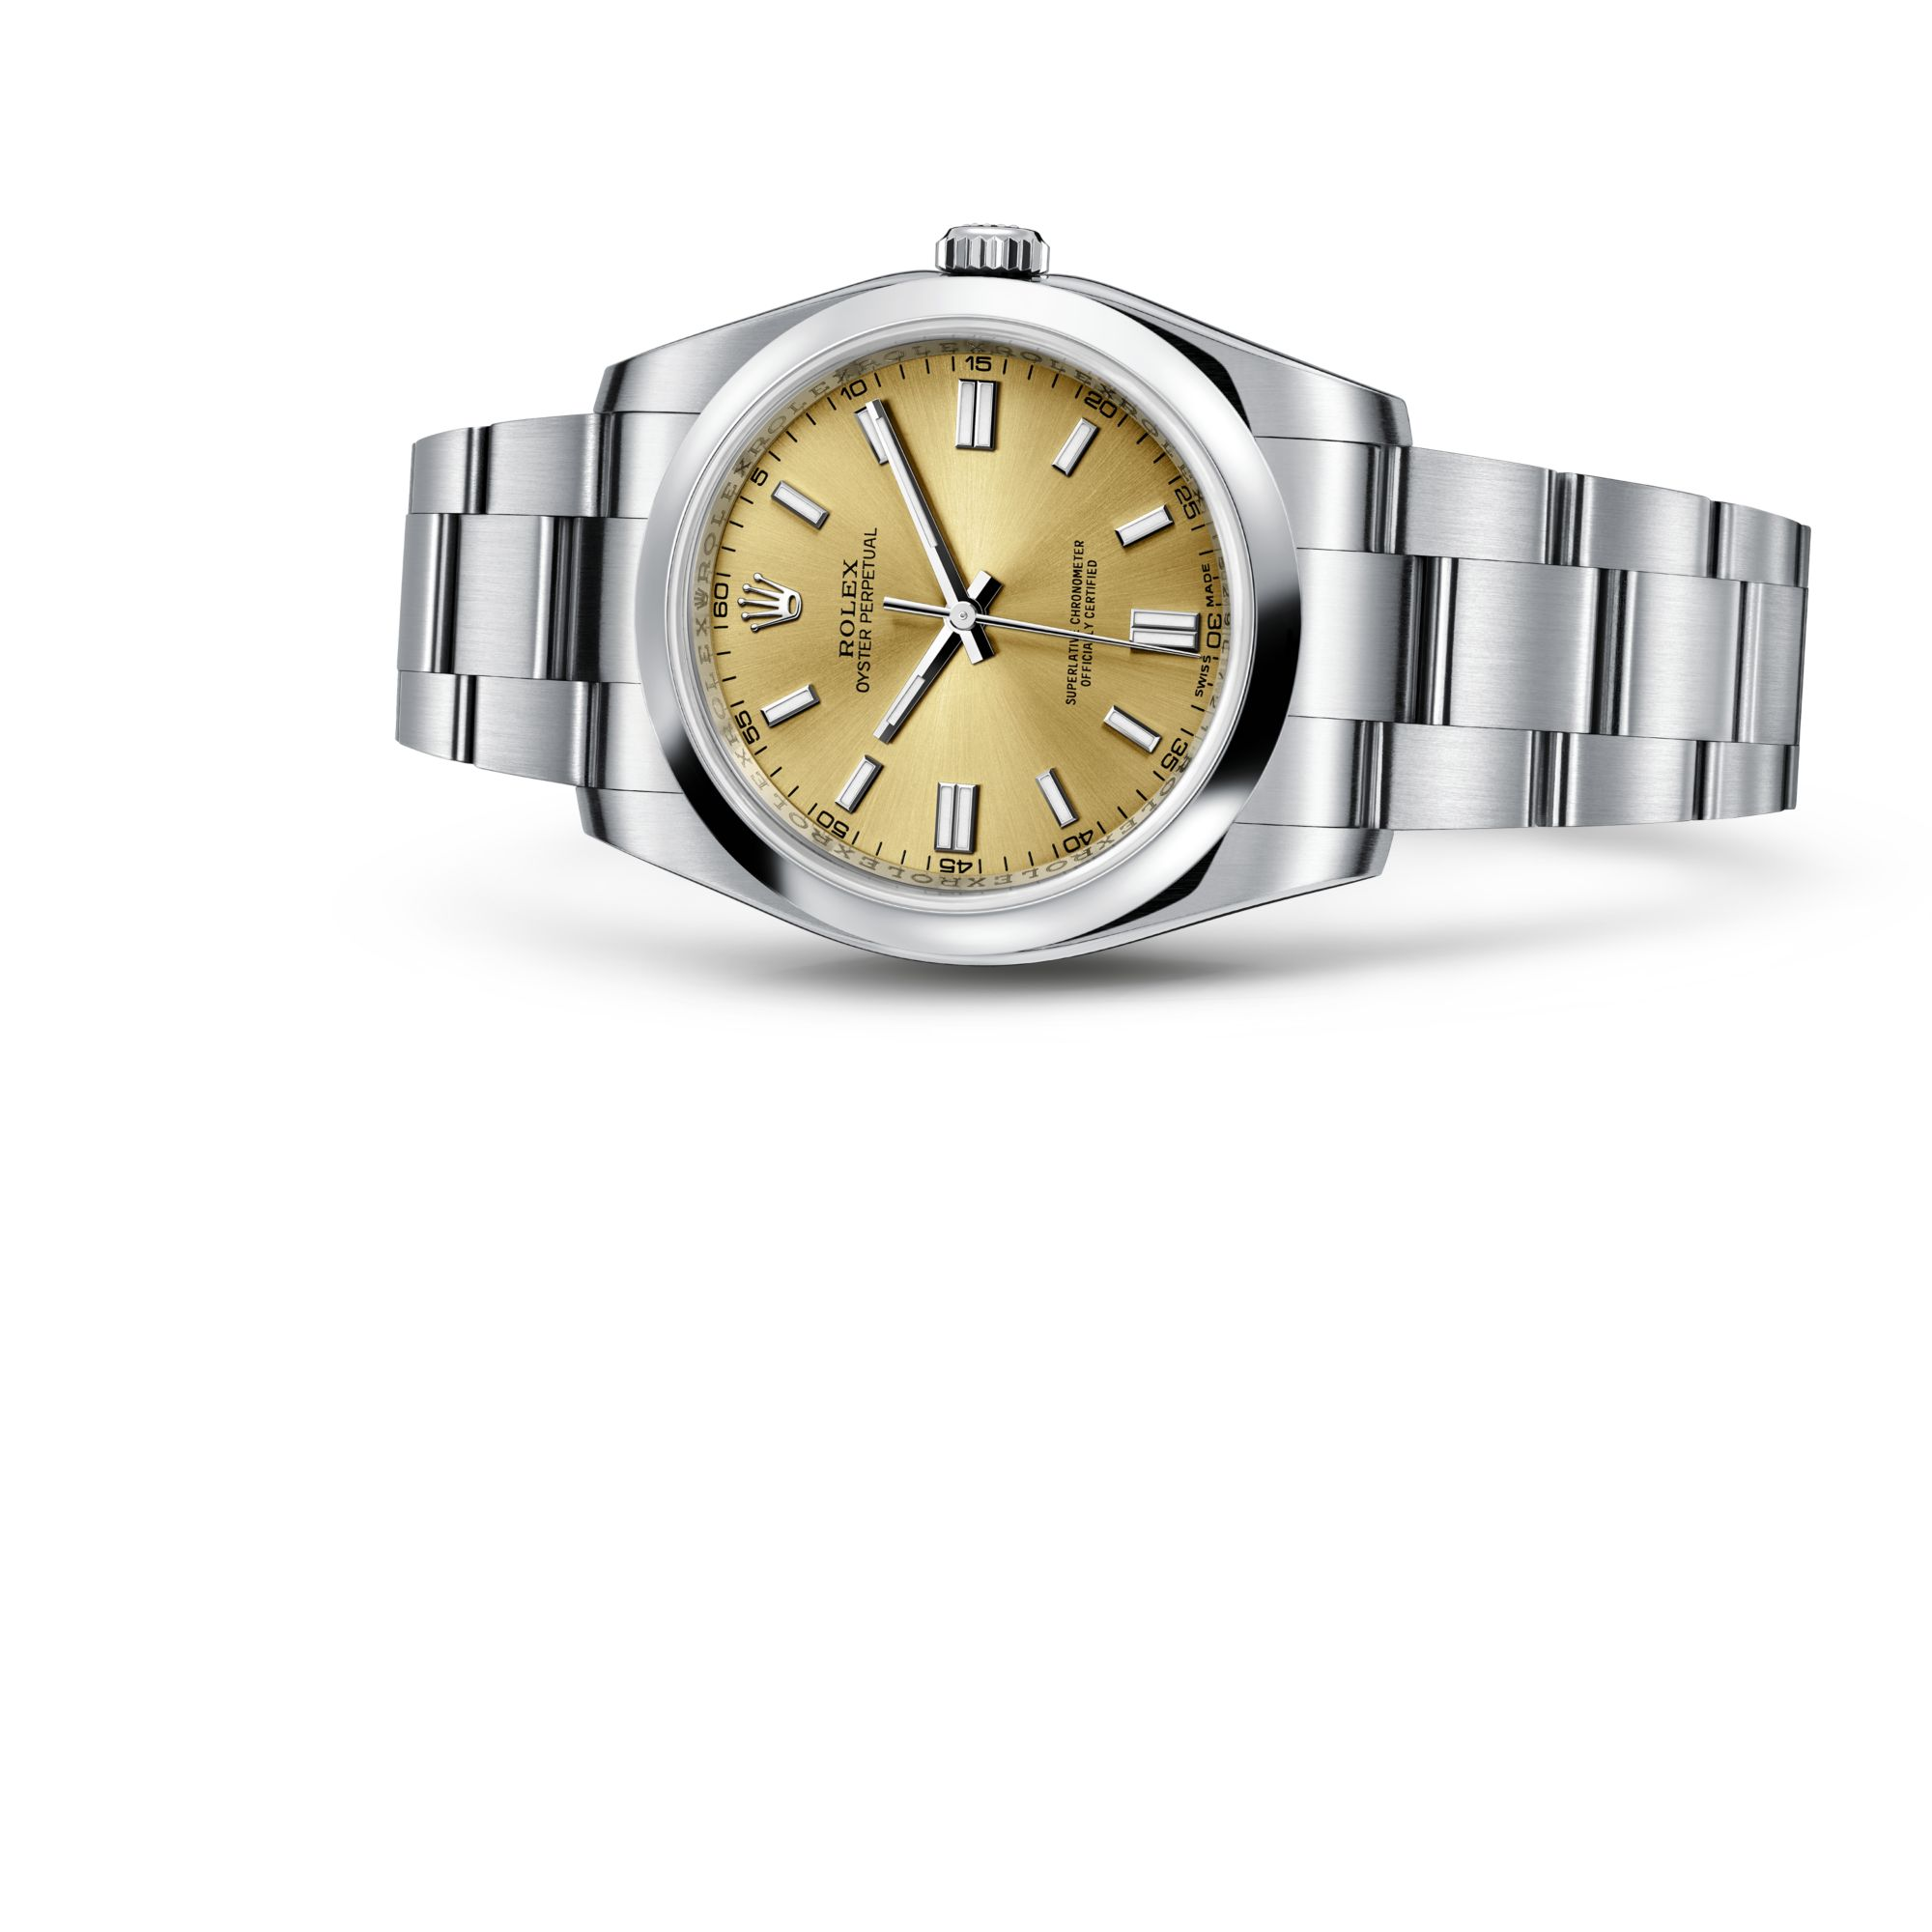 Rolex Oyster Perpetual 36 M116000-0011